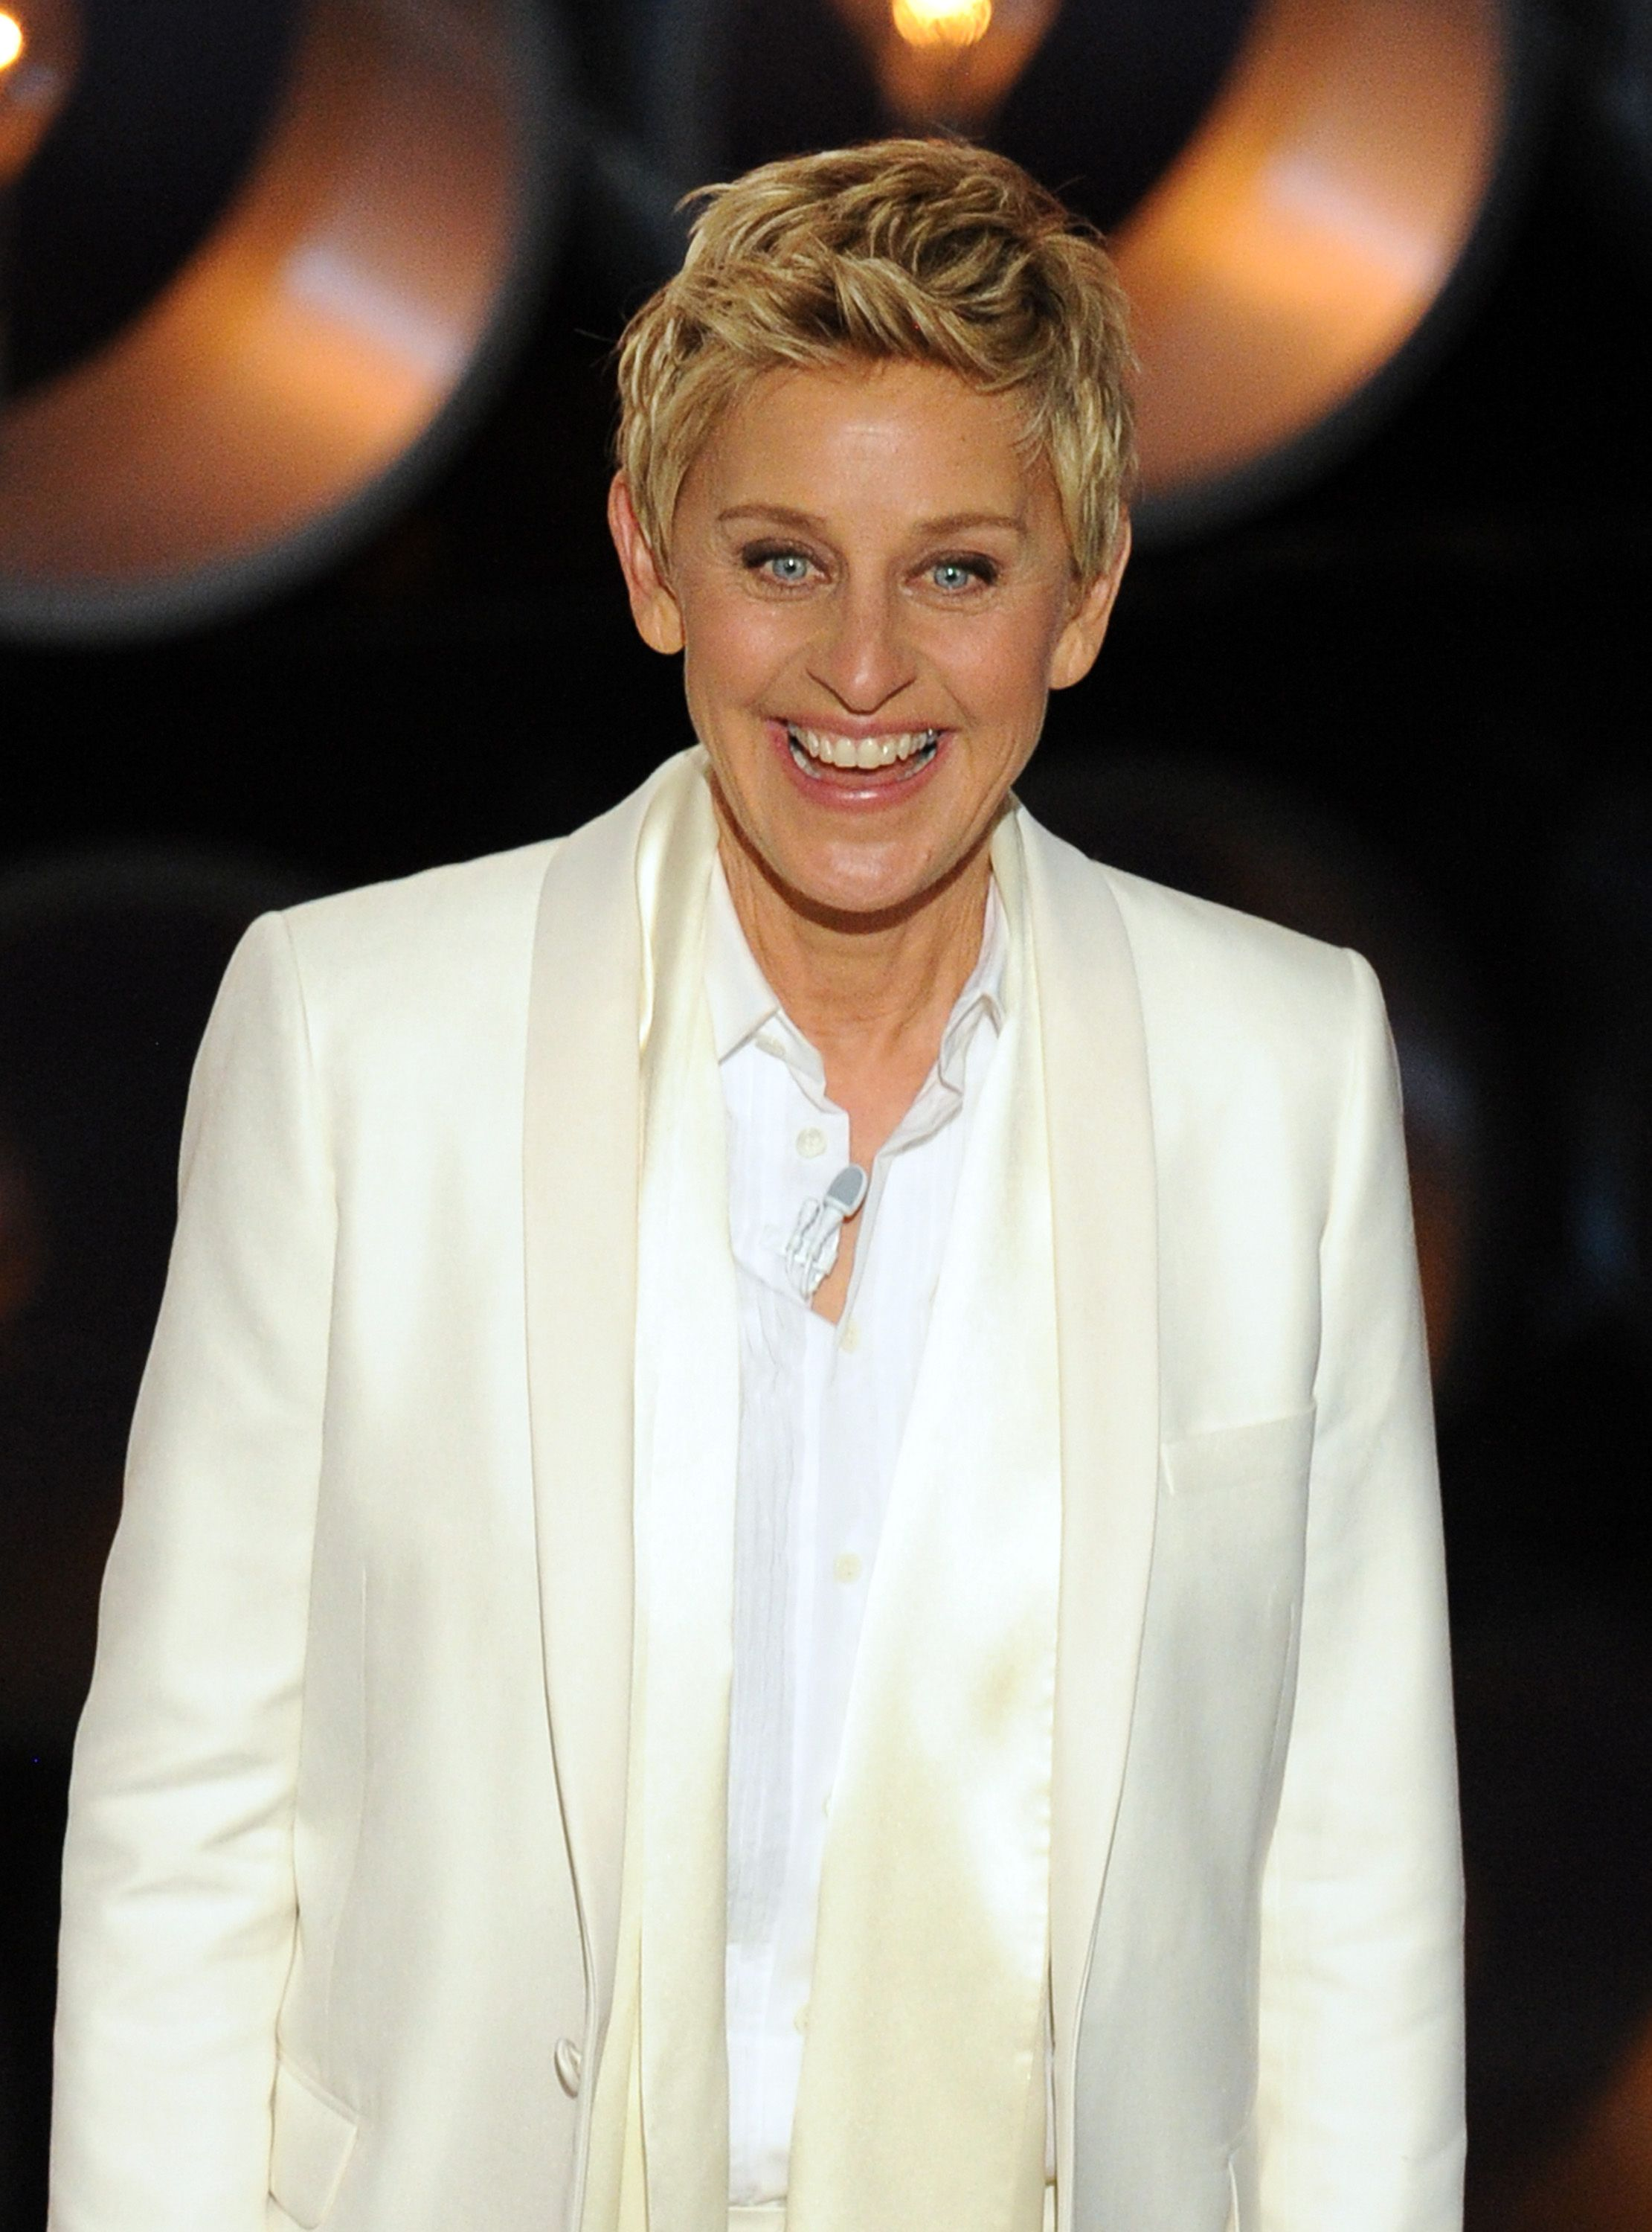 Ellen DeGeneres at the Oscars at the Dolby Theatre on March 2, 2014 | Photo: Getty Images